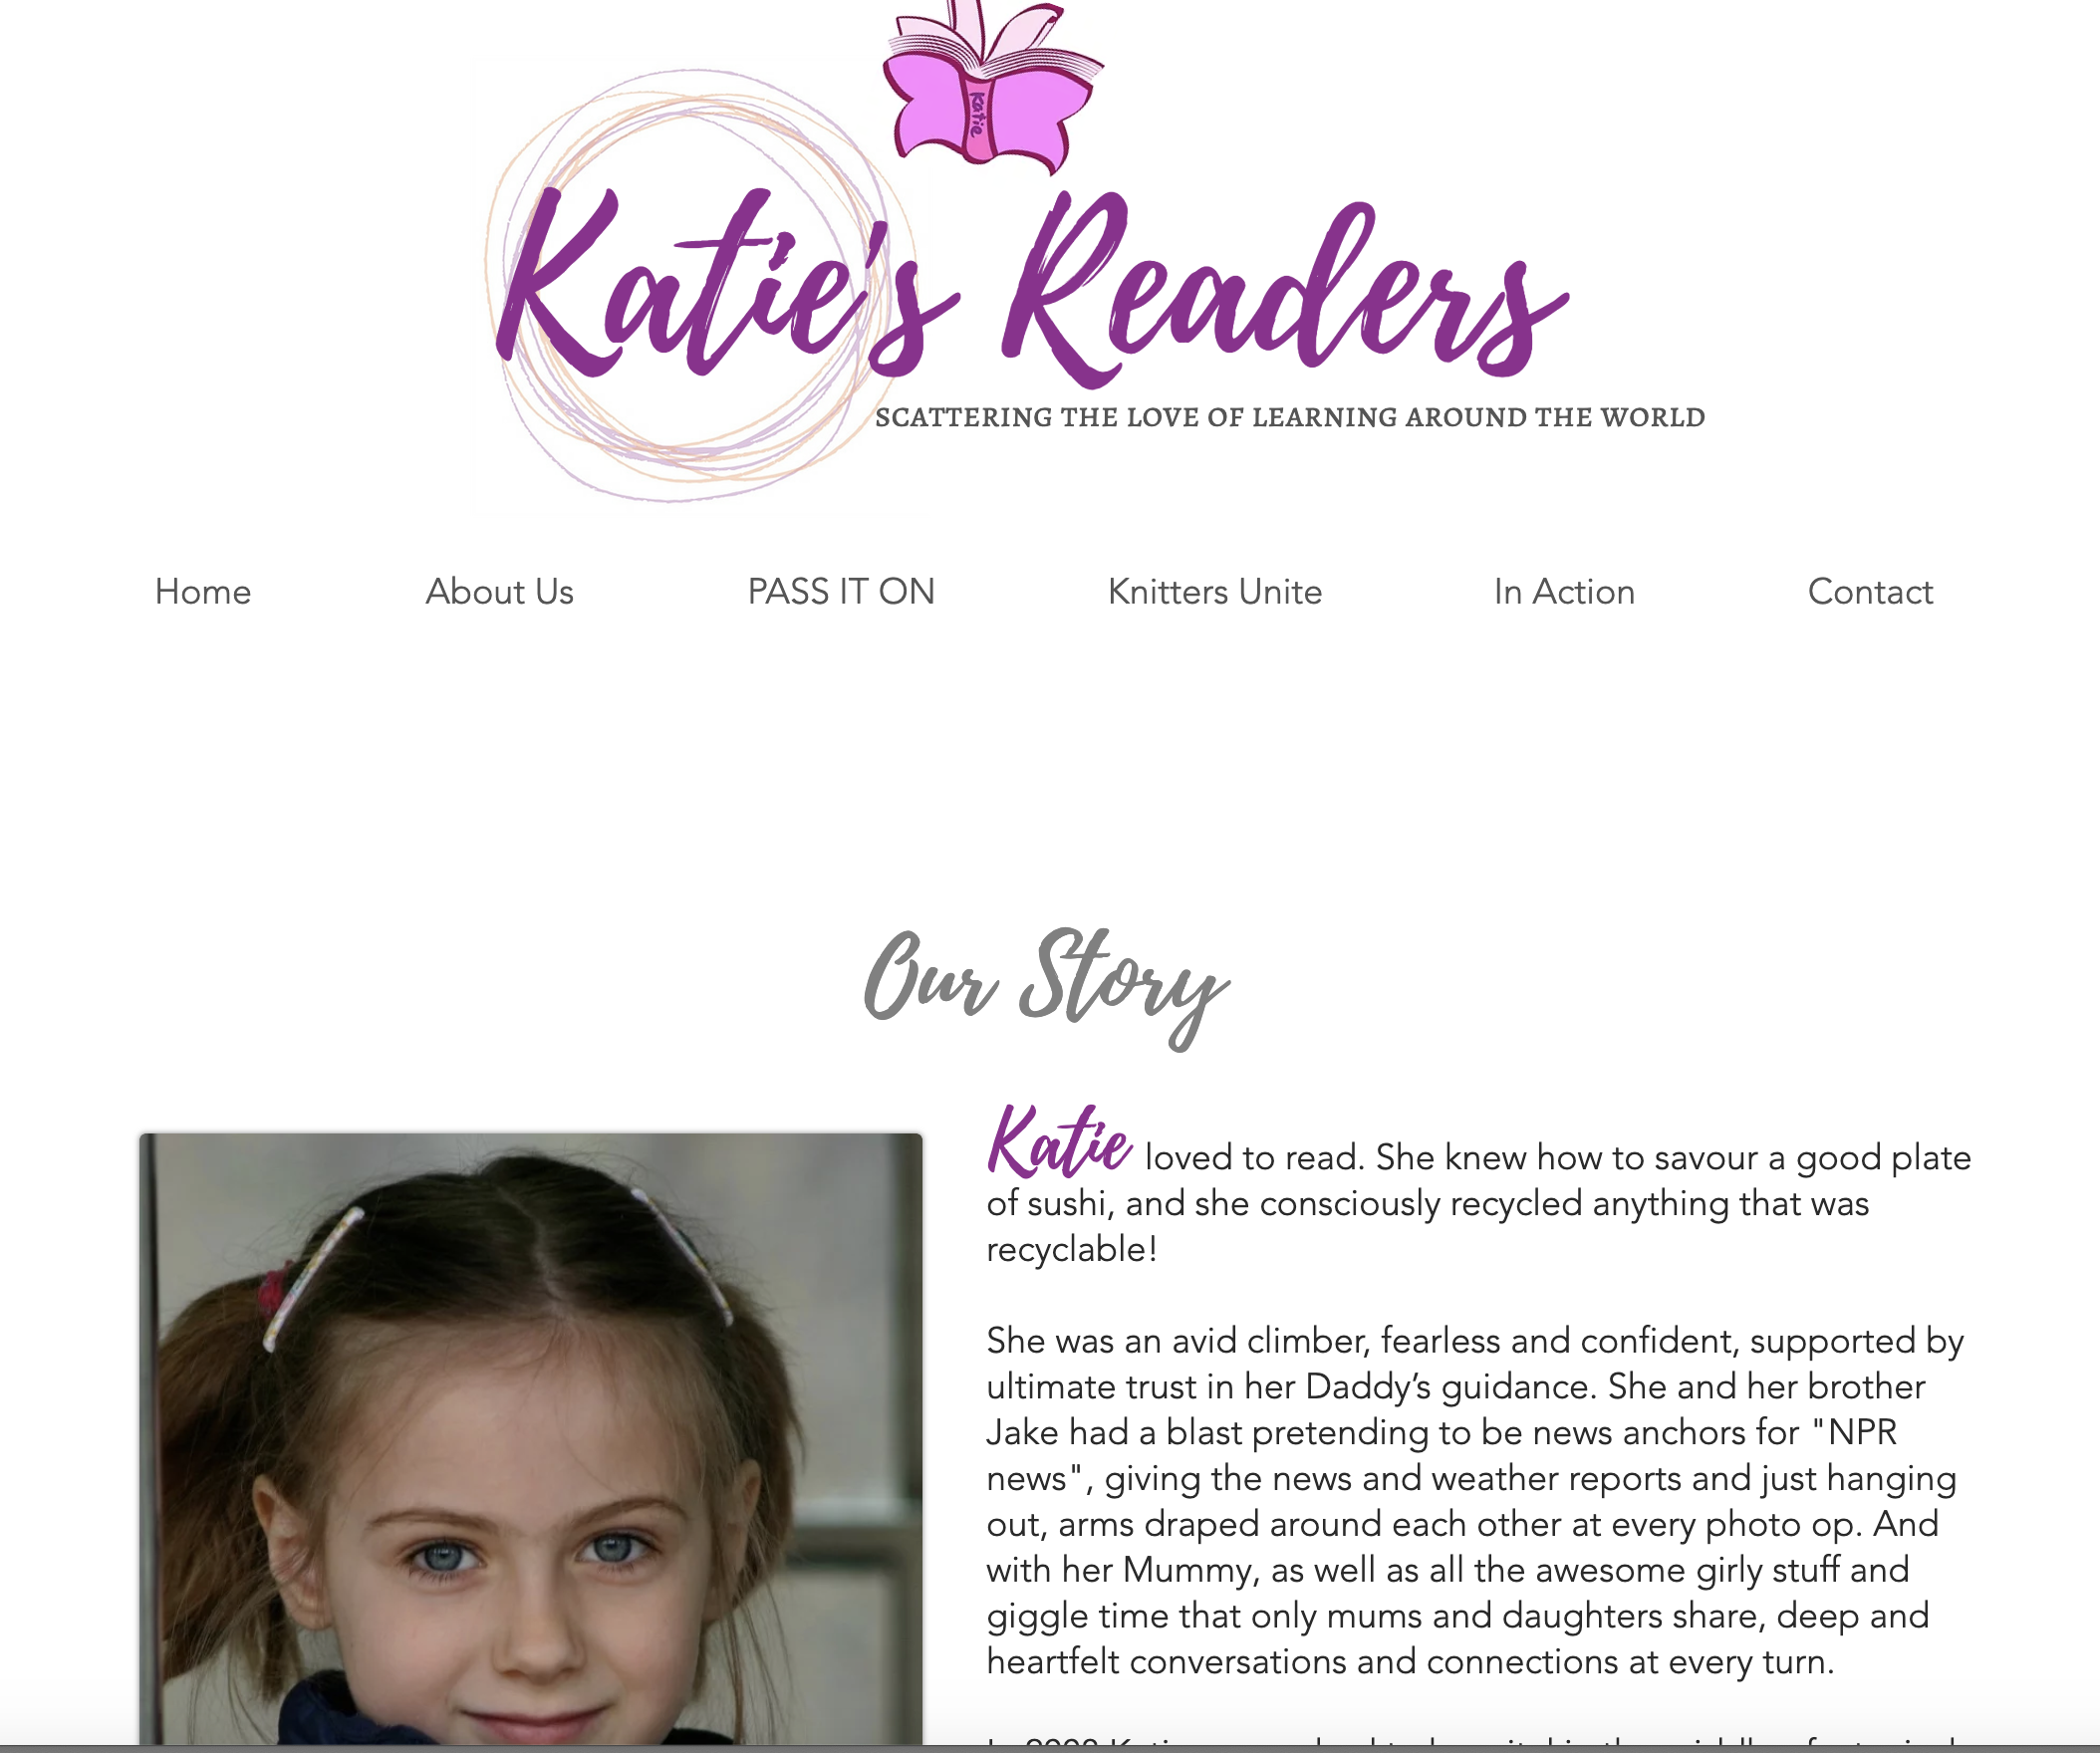 Katie About Us Page  | Katie Readers